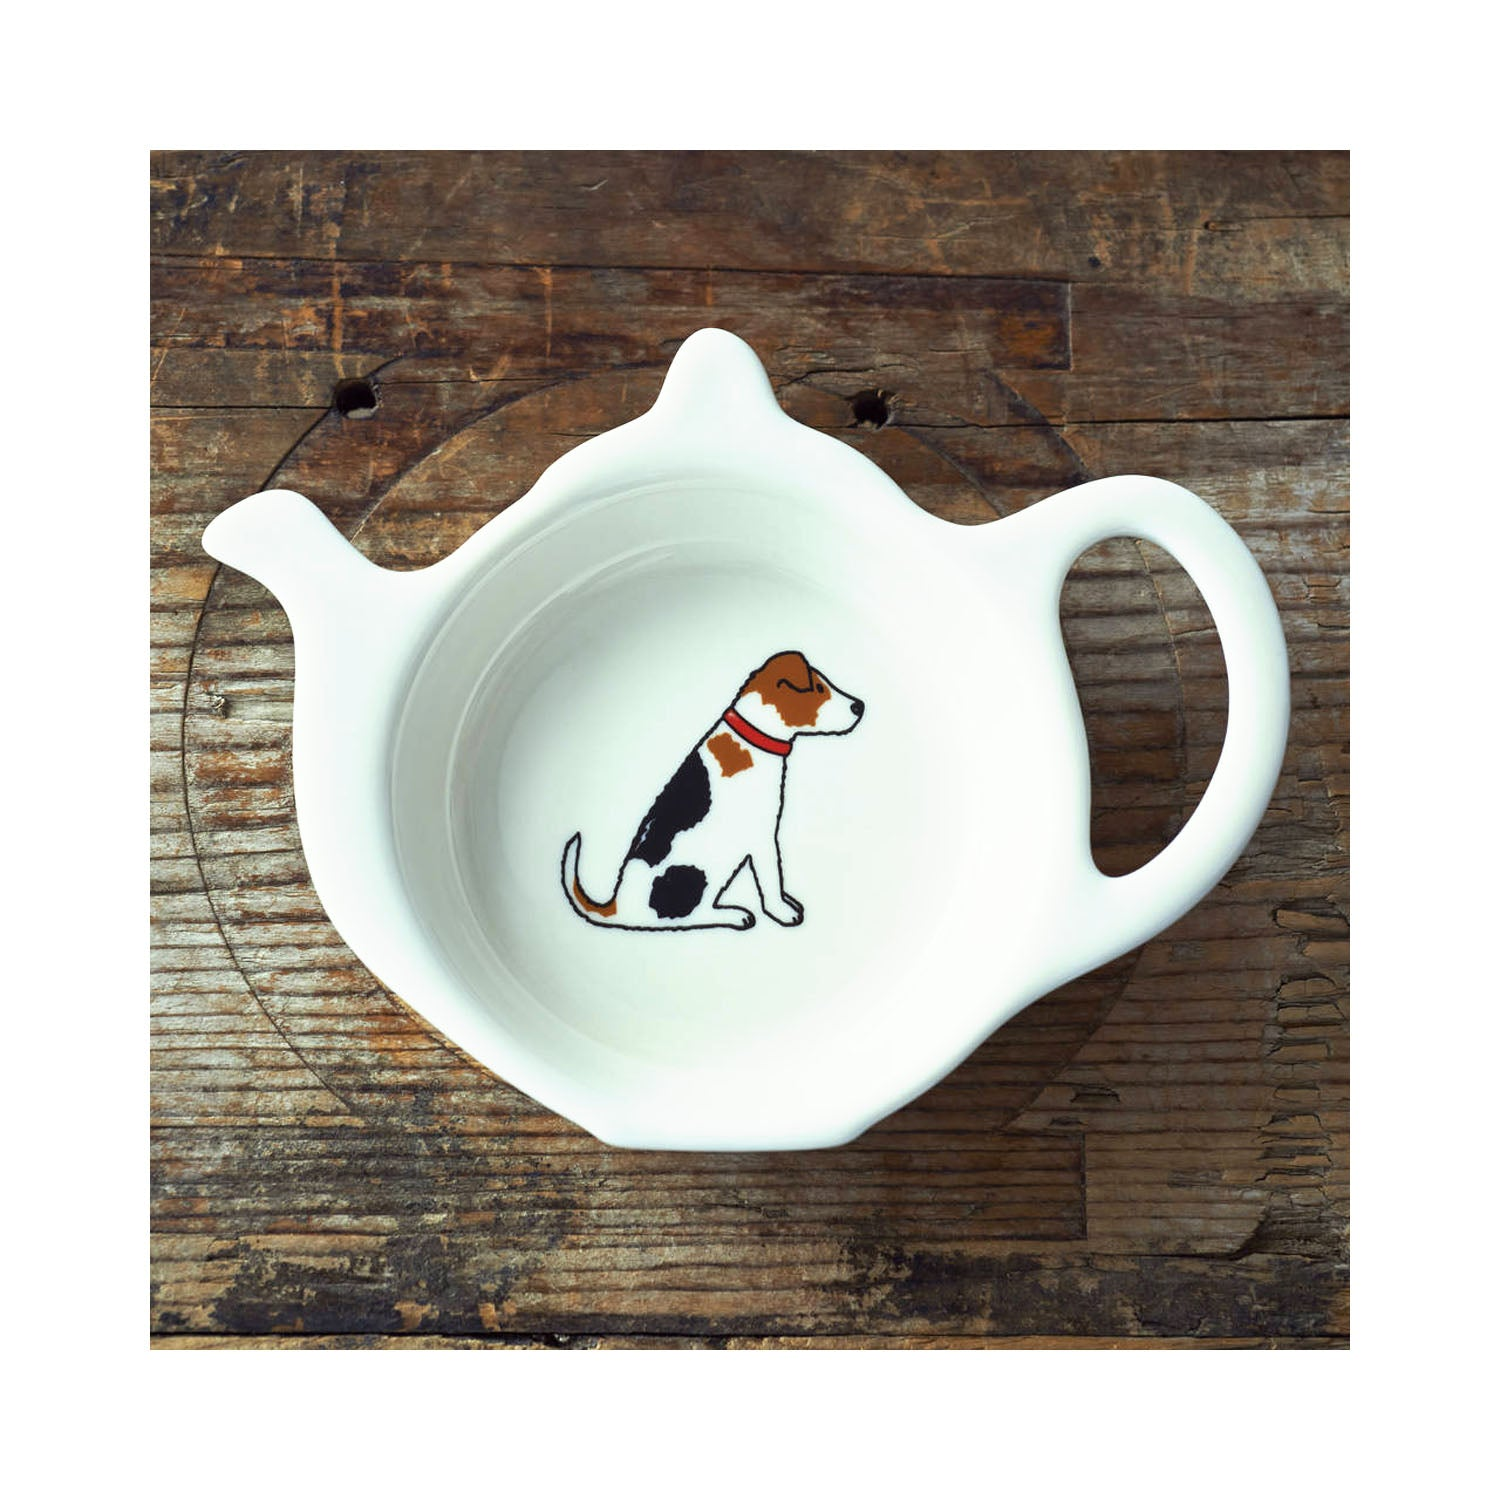 Dog Lover Gifts available at Dog Krazy Gifts - Alfie The Jack Russell Teabag Dish - part of the Sweet William range available from Dog Krazy Gifts